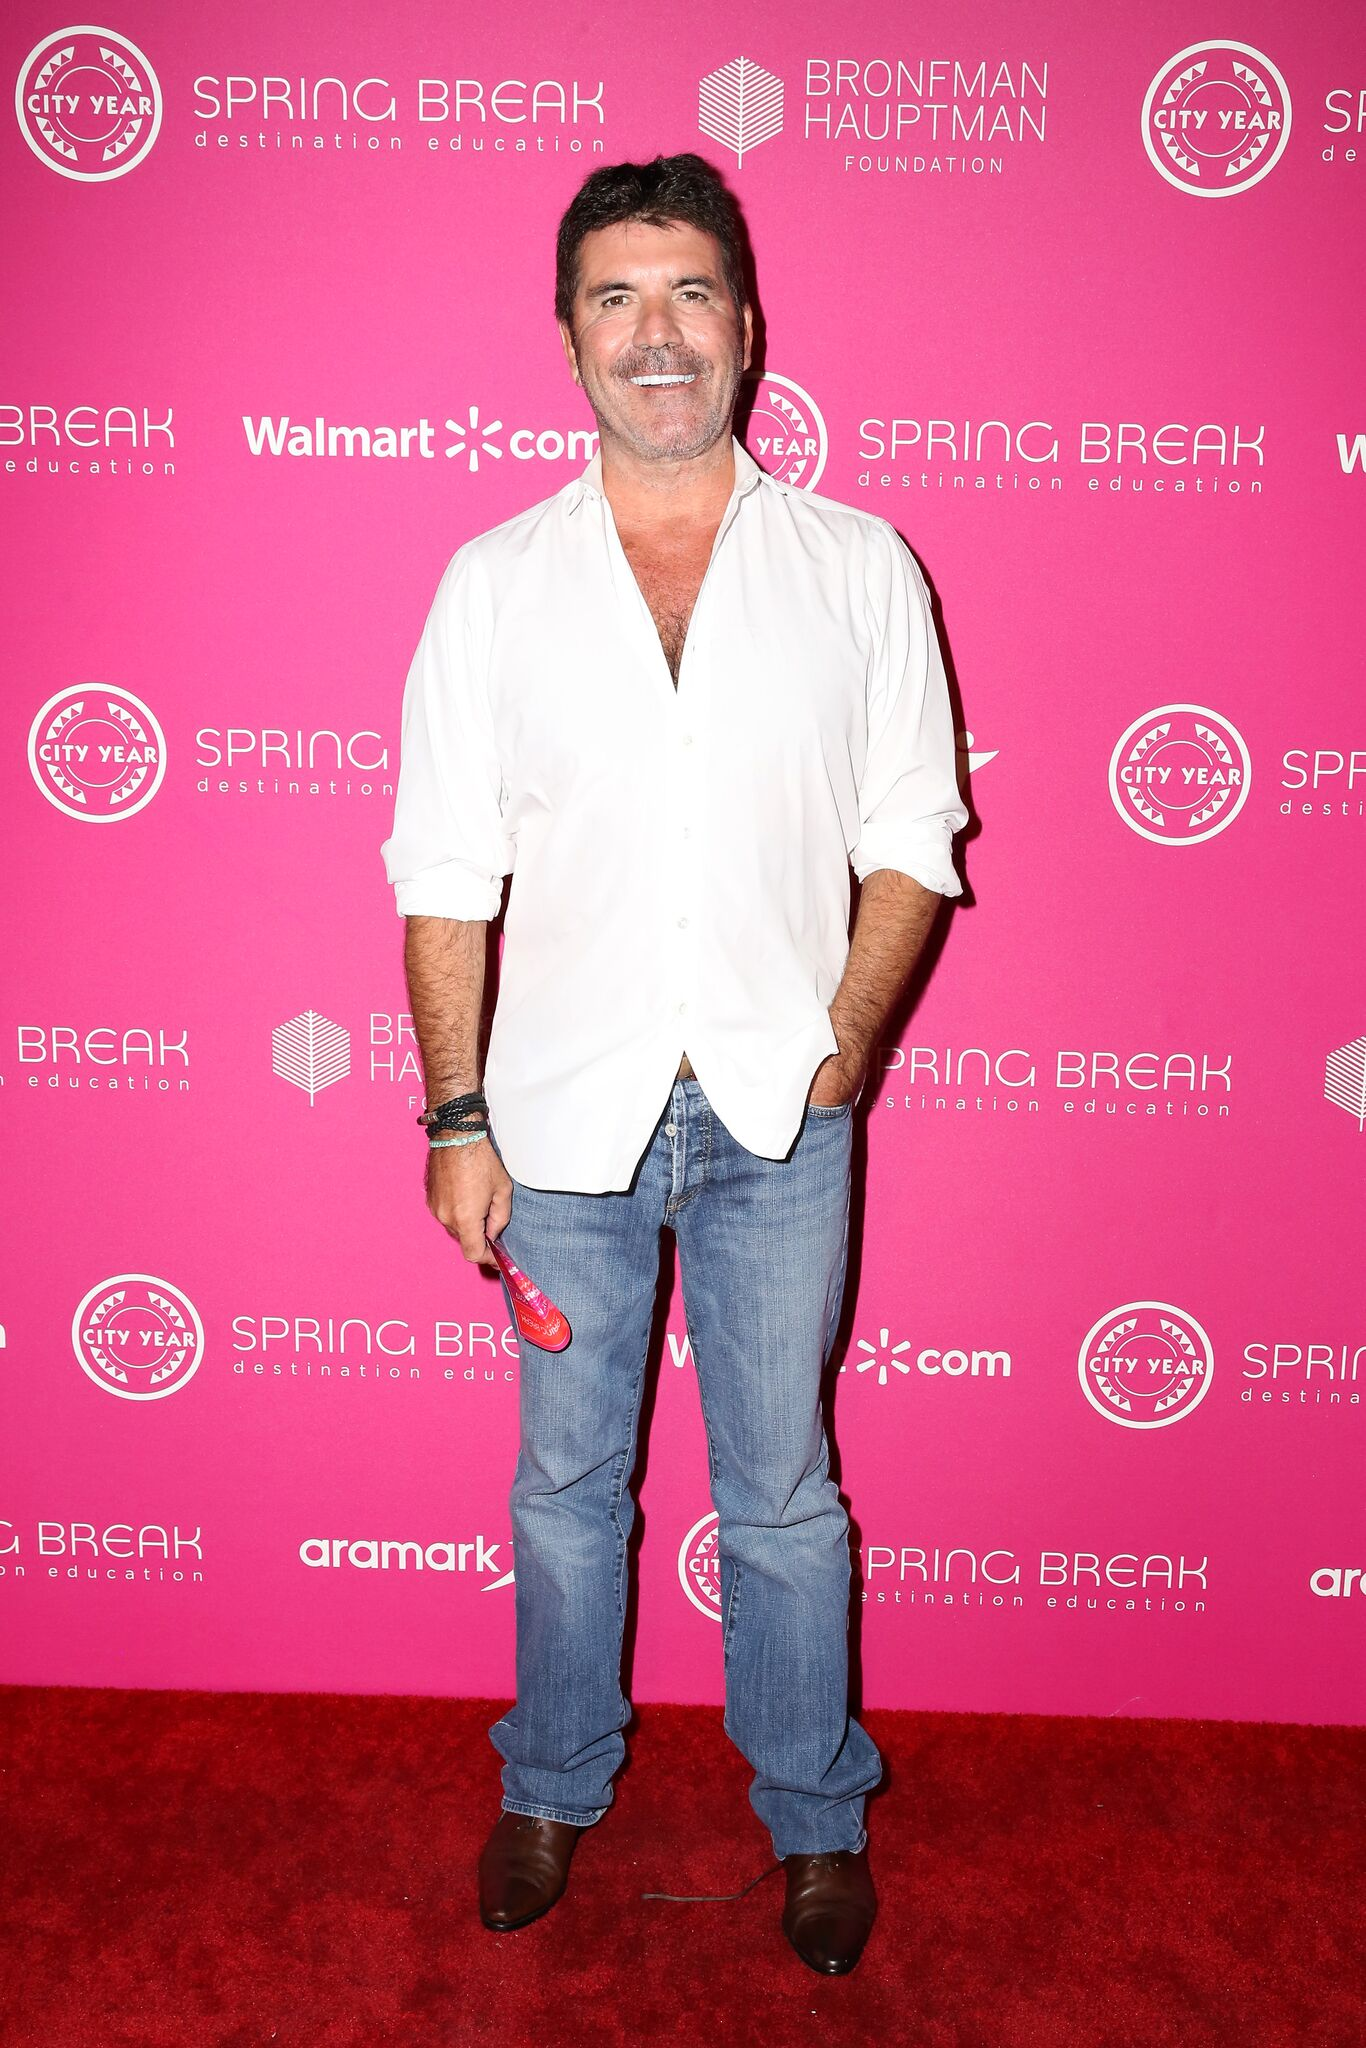 Simon Cowell attends City Year Los Angeles' Spring Break: Destination Education | Getty Images